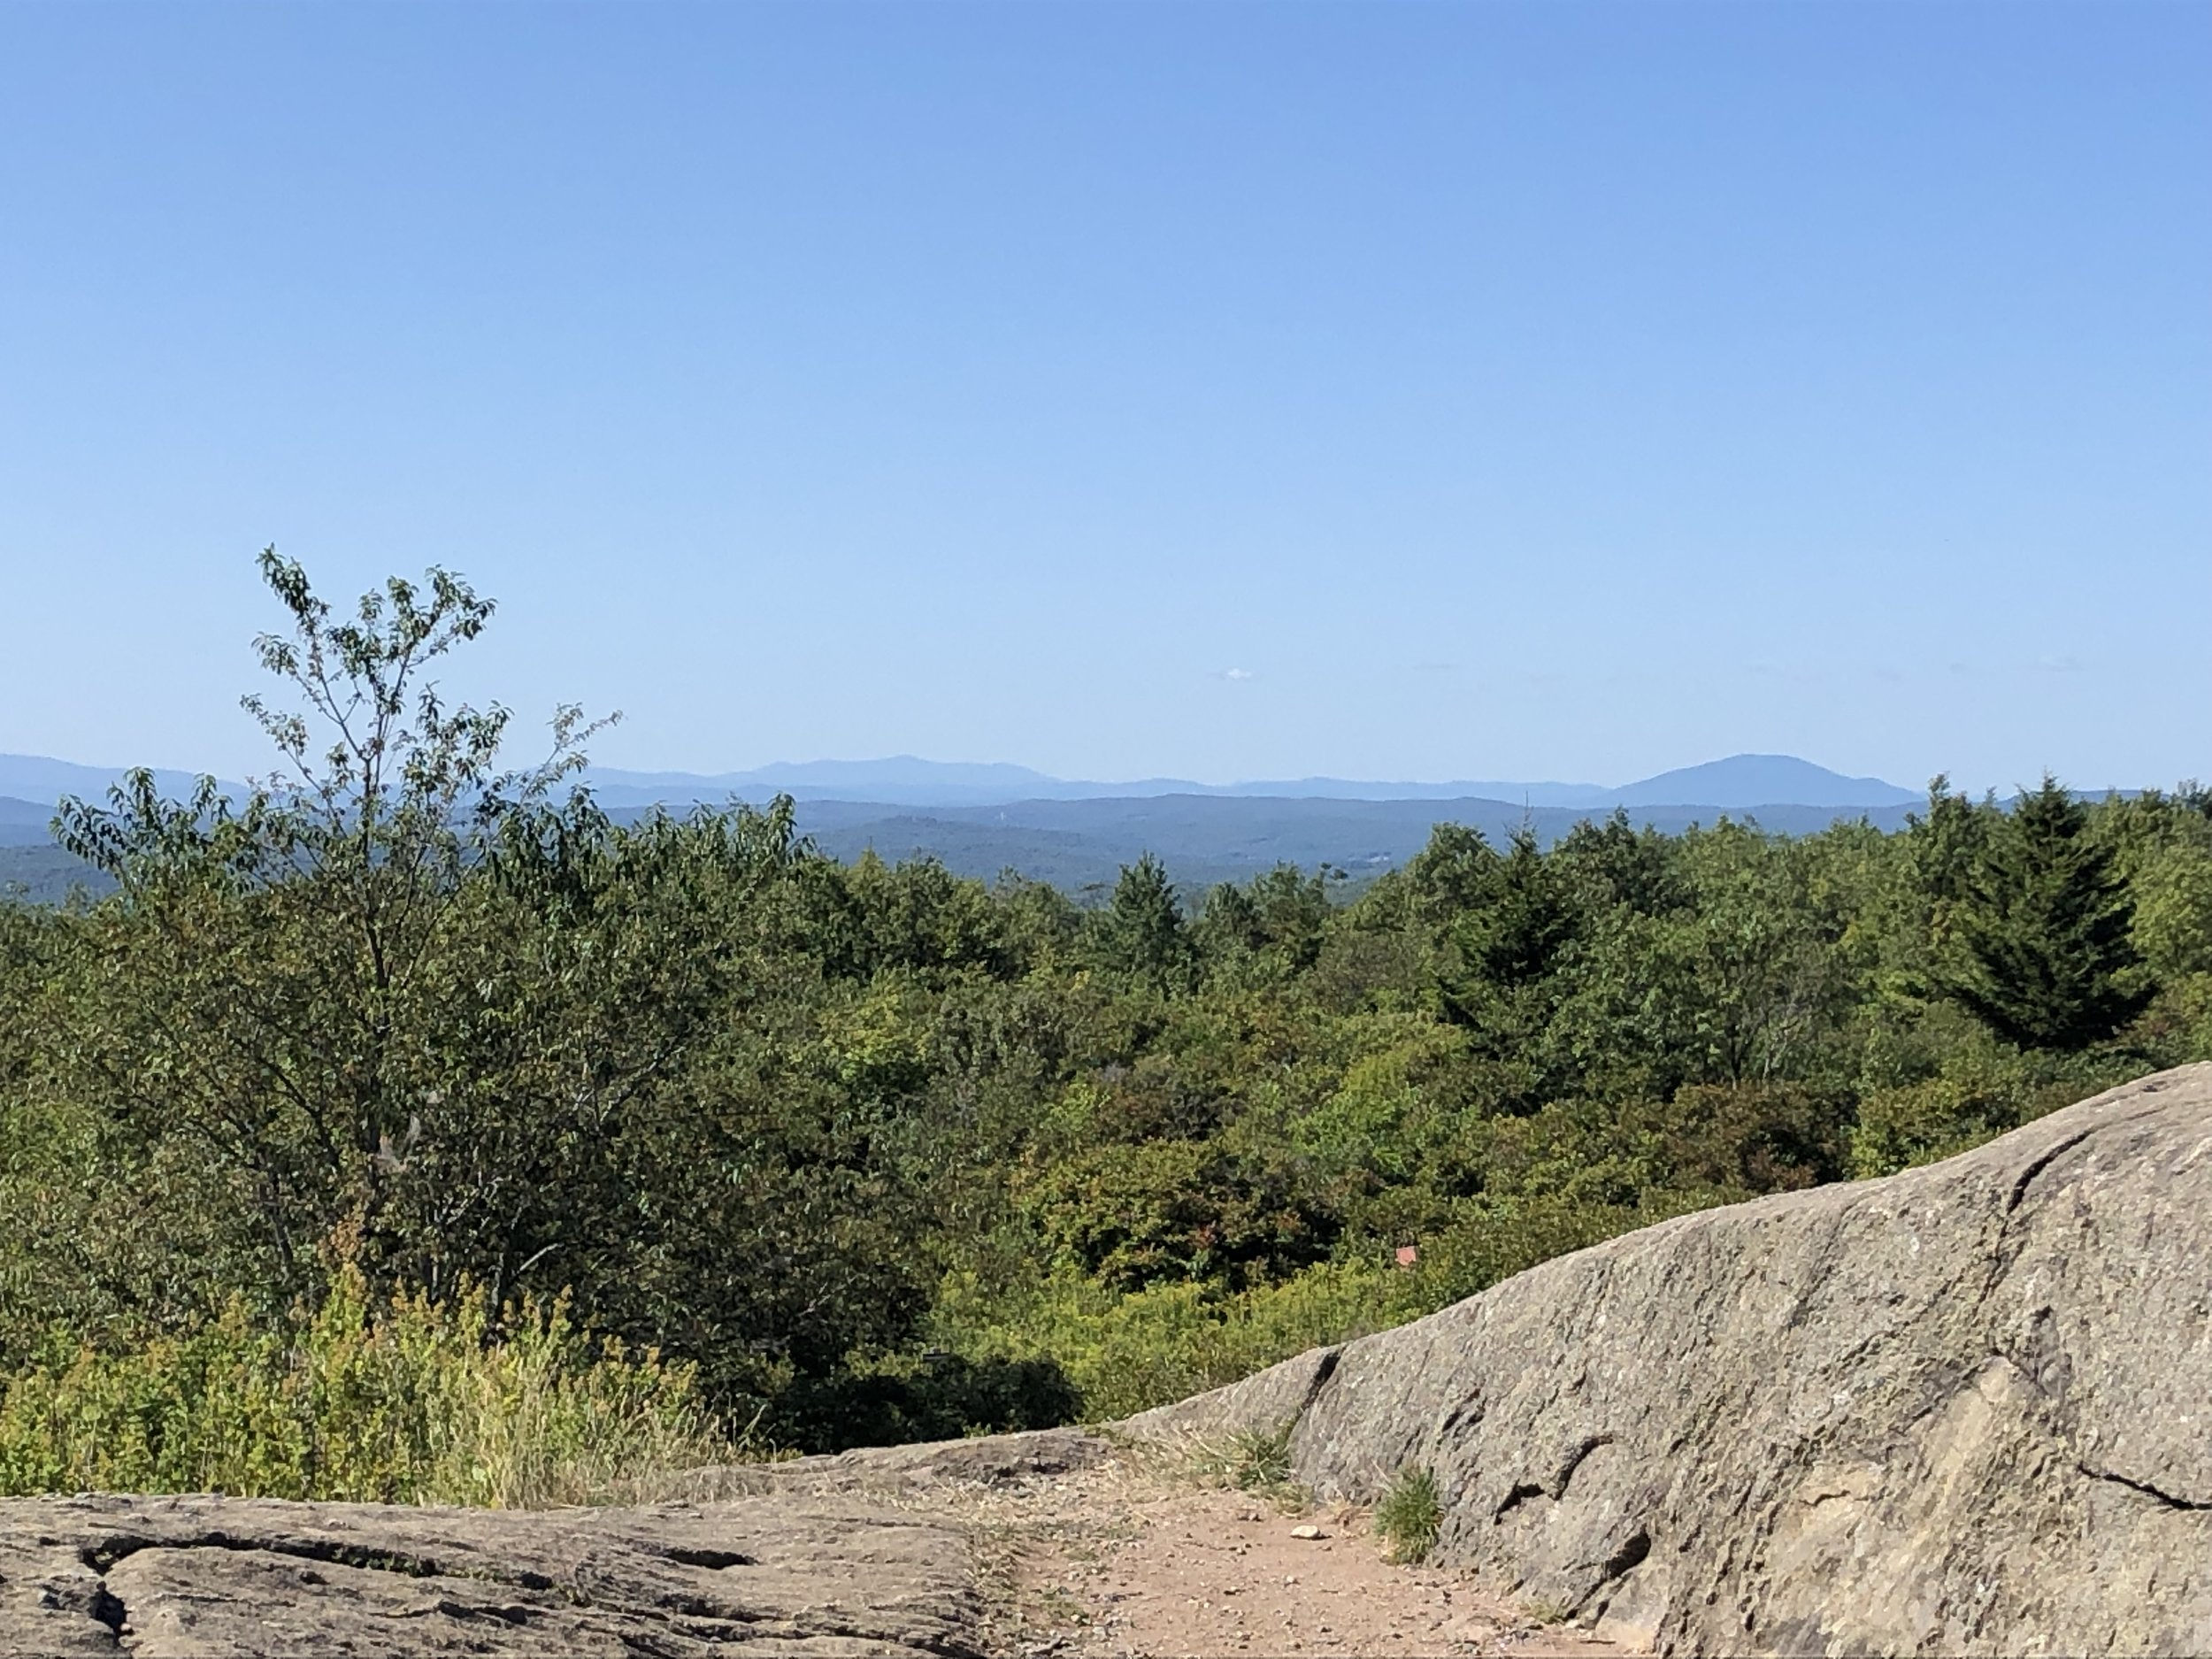 Mount Sunapee to the right in the distance.